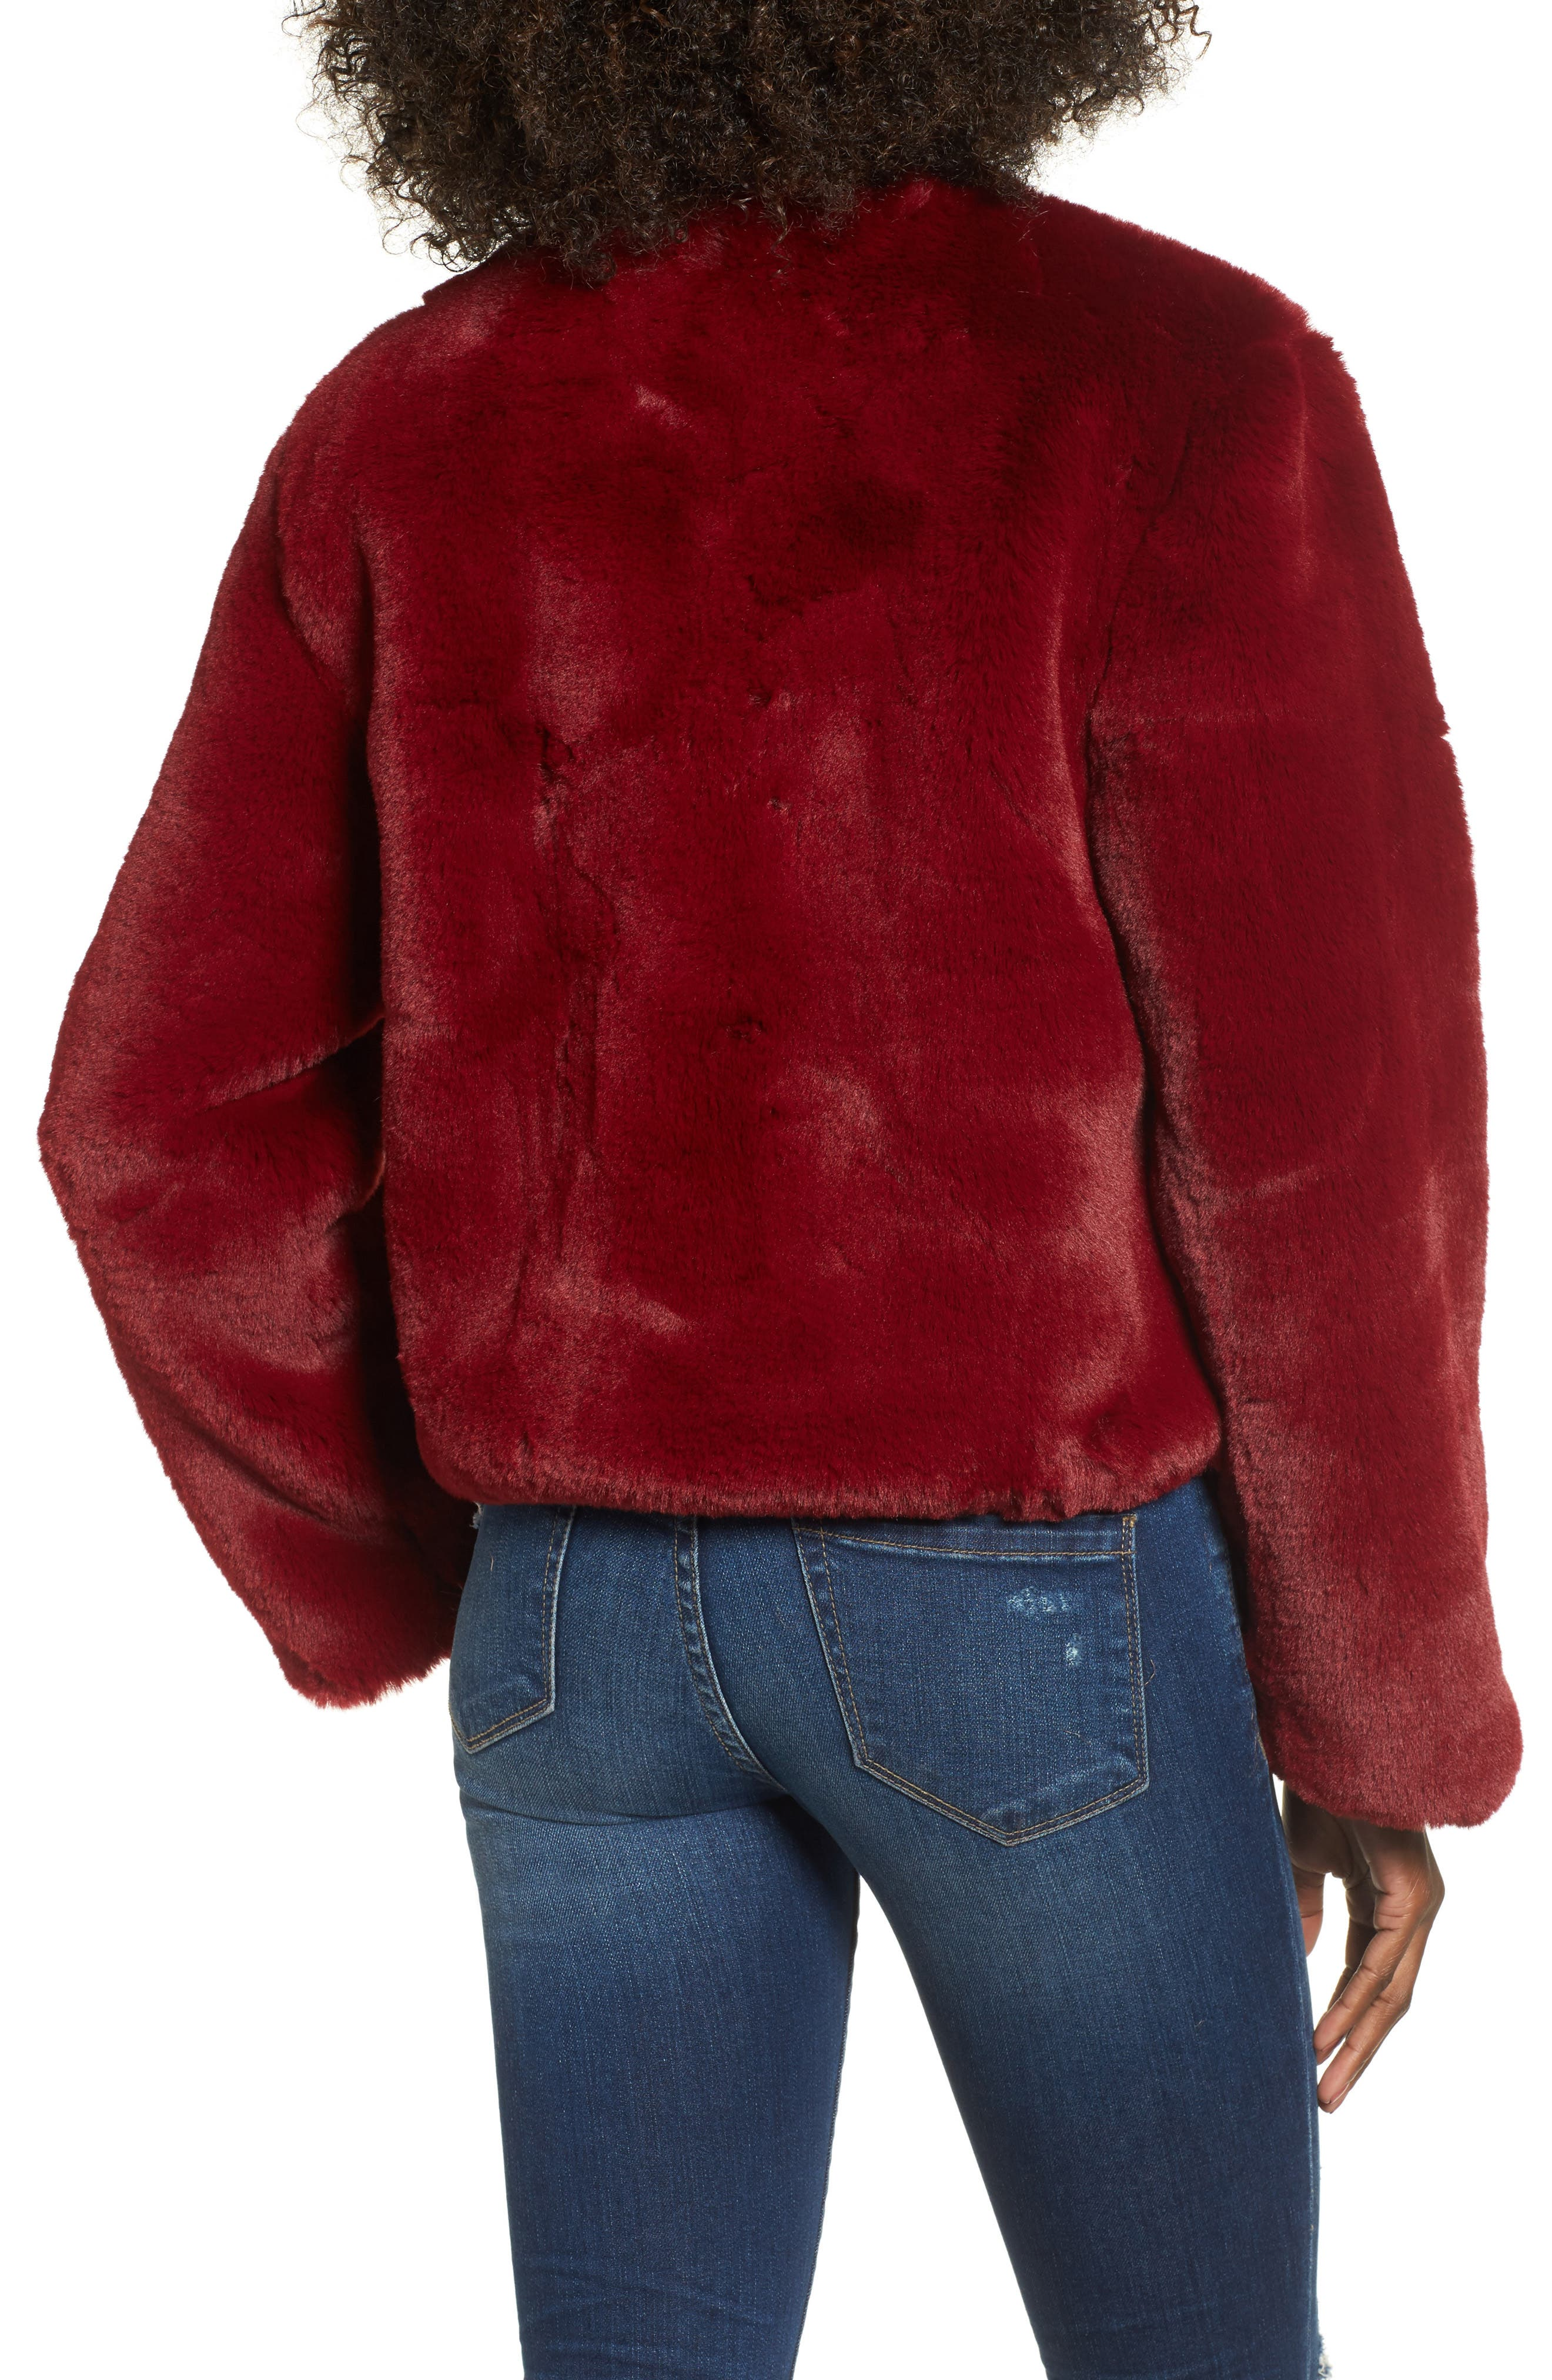 Lonely Hearts Faux Fur Jacket,                             Alternate thumbnail 2, color,                             600